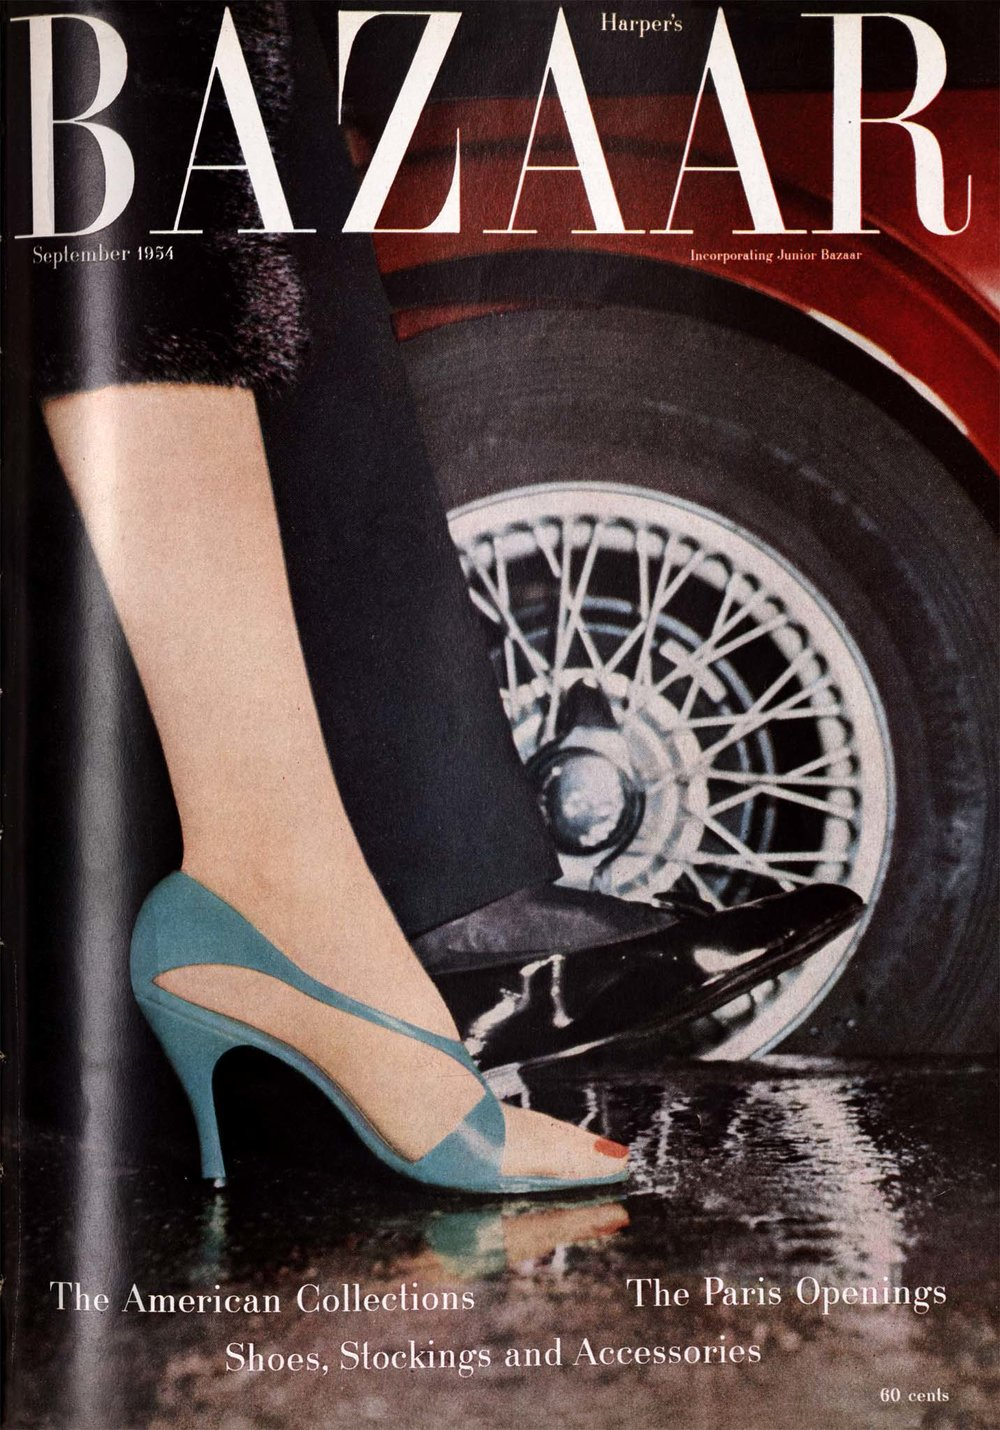 Harper's Bazaar , September 1954